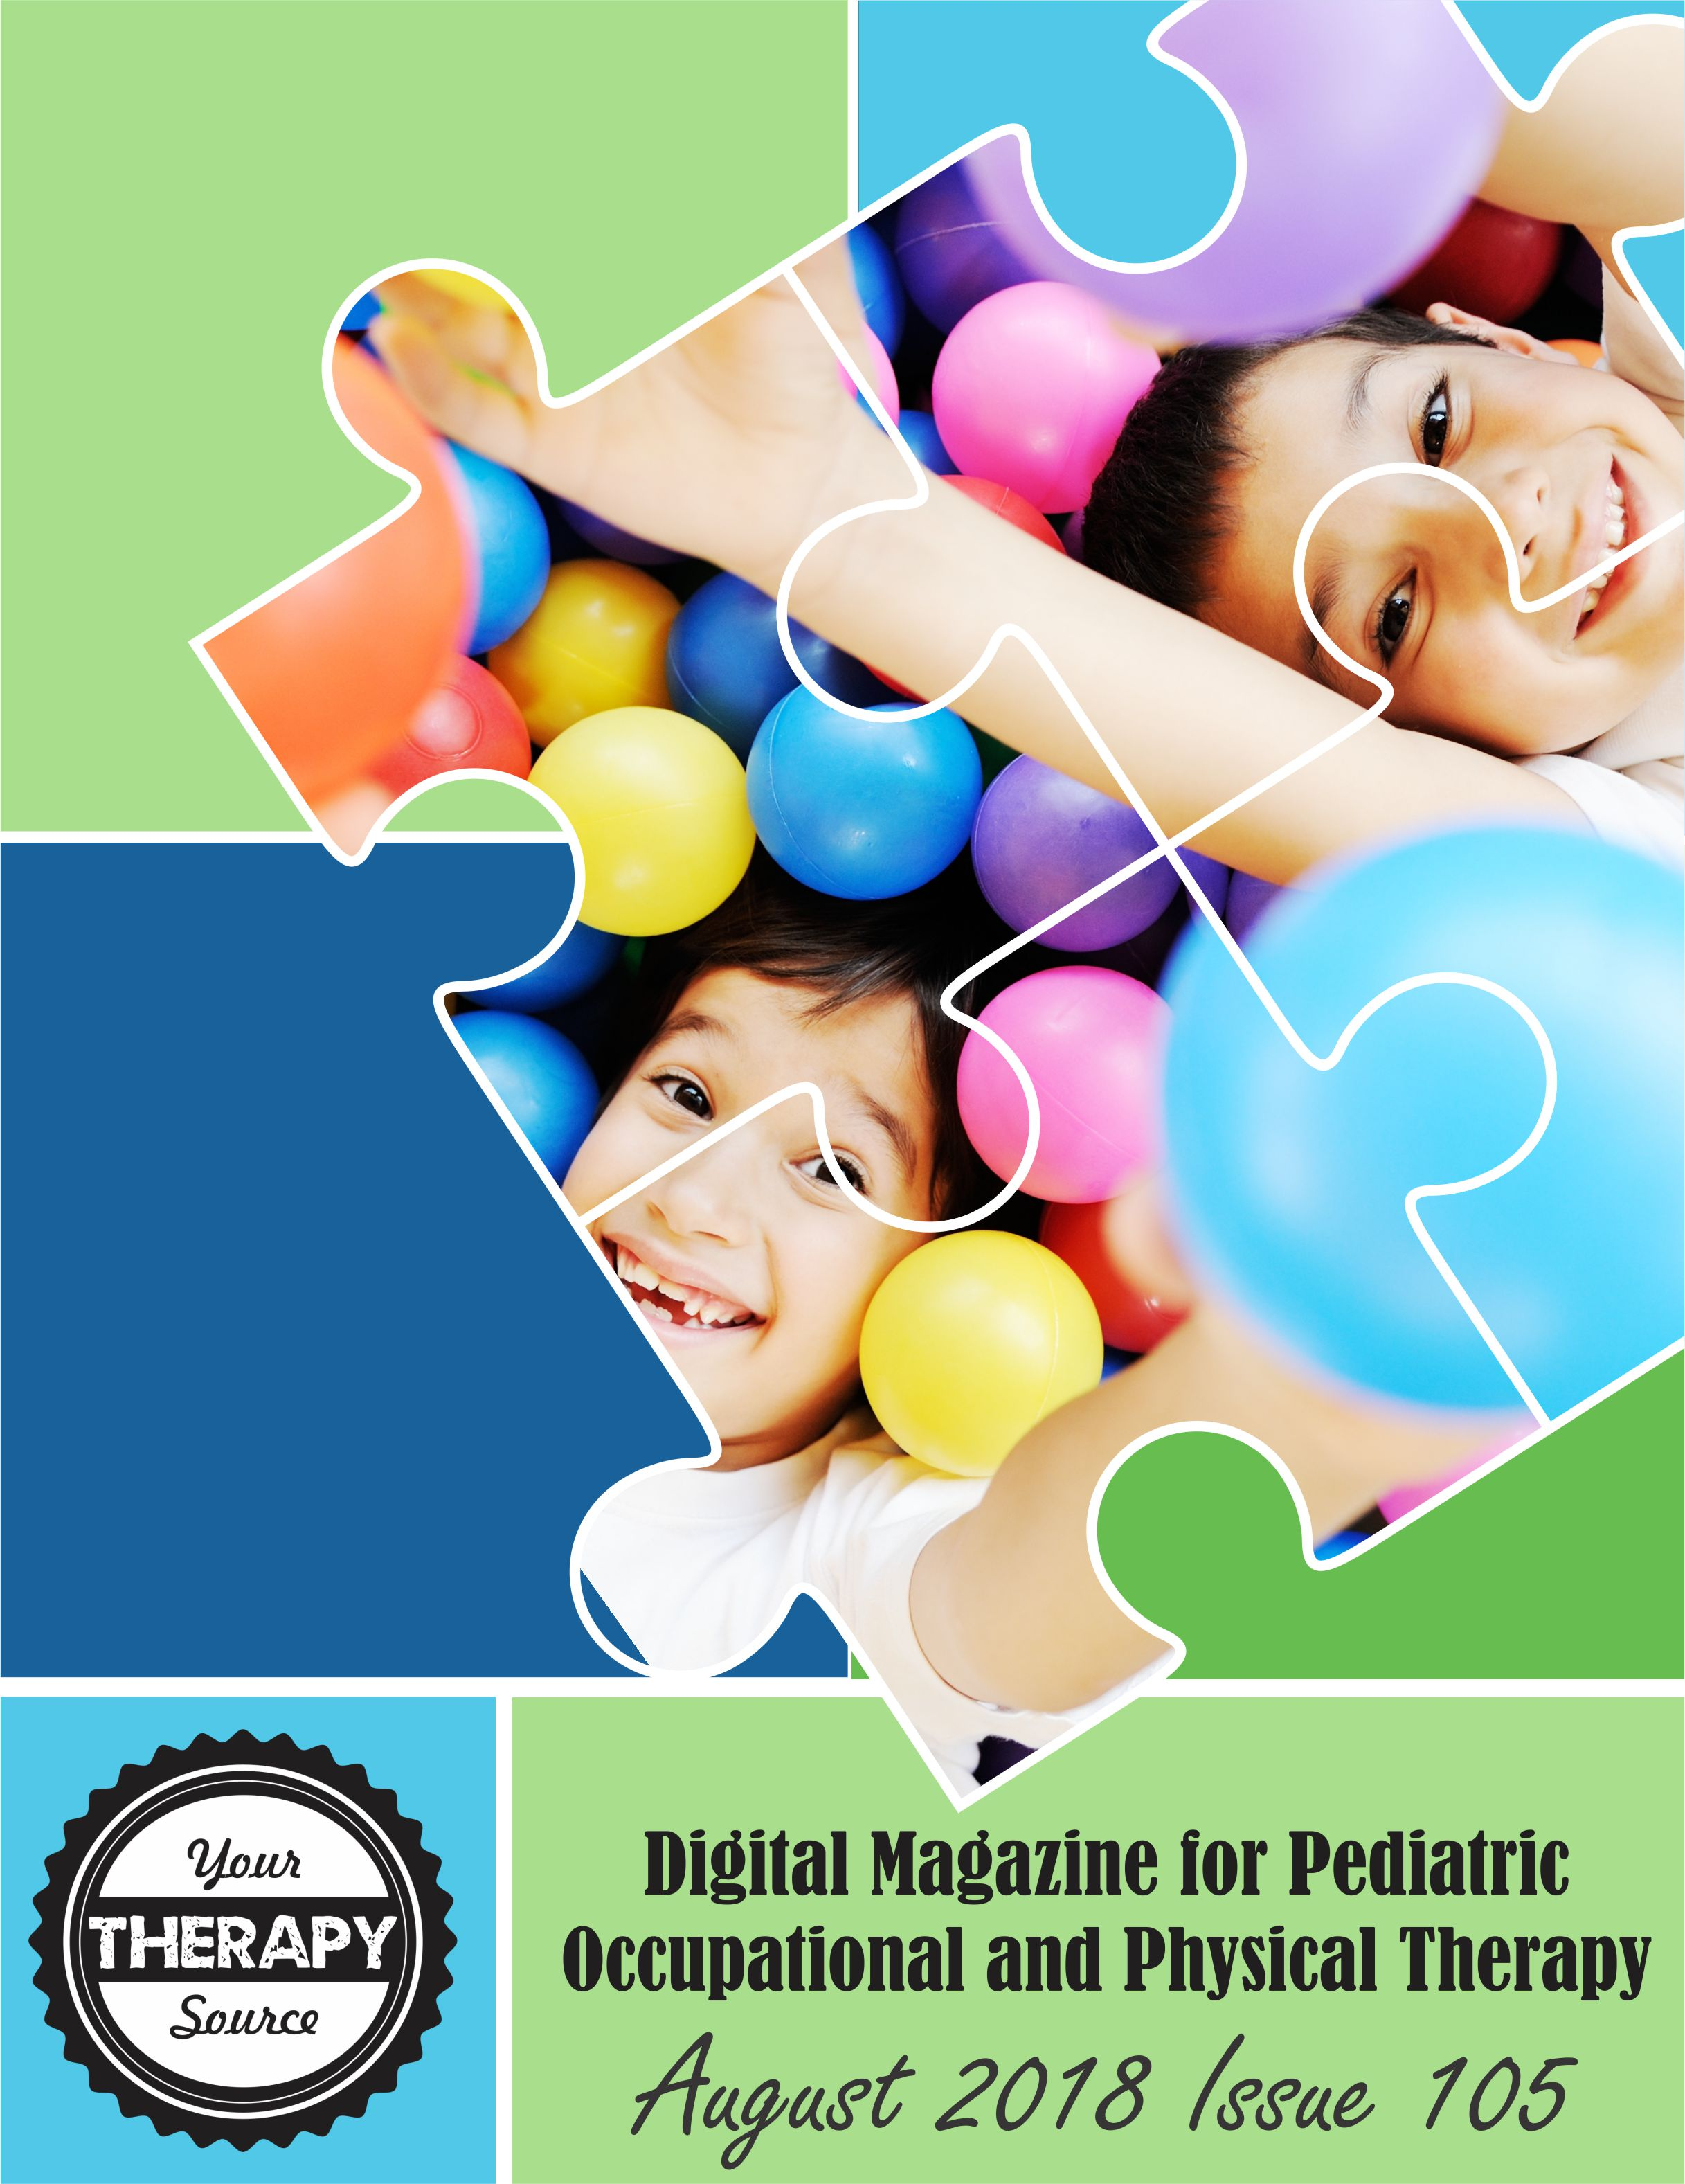 August 2018 Digital Magazine for Pediatric OTs and PTs